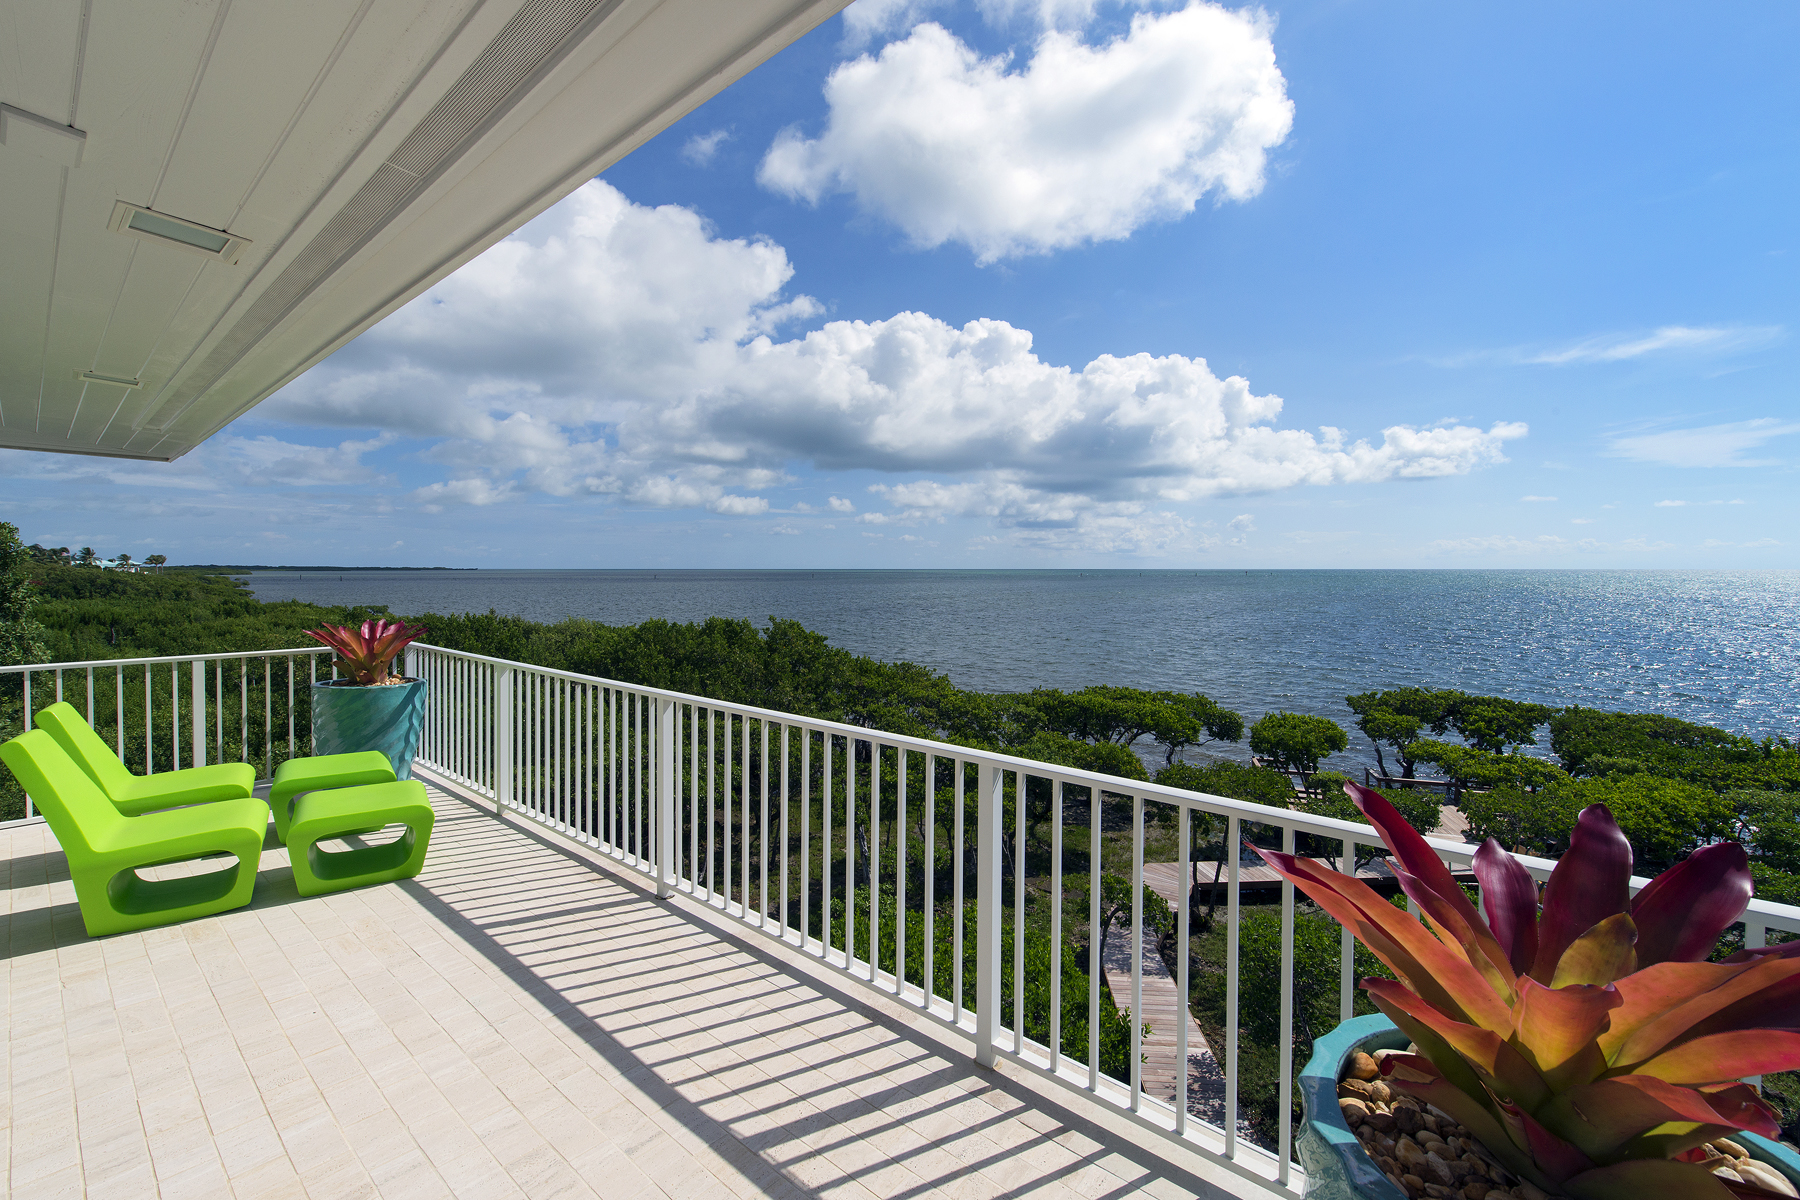 Casa para uma família para Venda às Captivating Ocean Front Views at Ocean Reef 15 Sunrise Cay Drive Ocean Reef Community, Key Largo, Florida, 33037 Estados Unidos